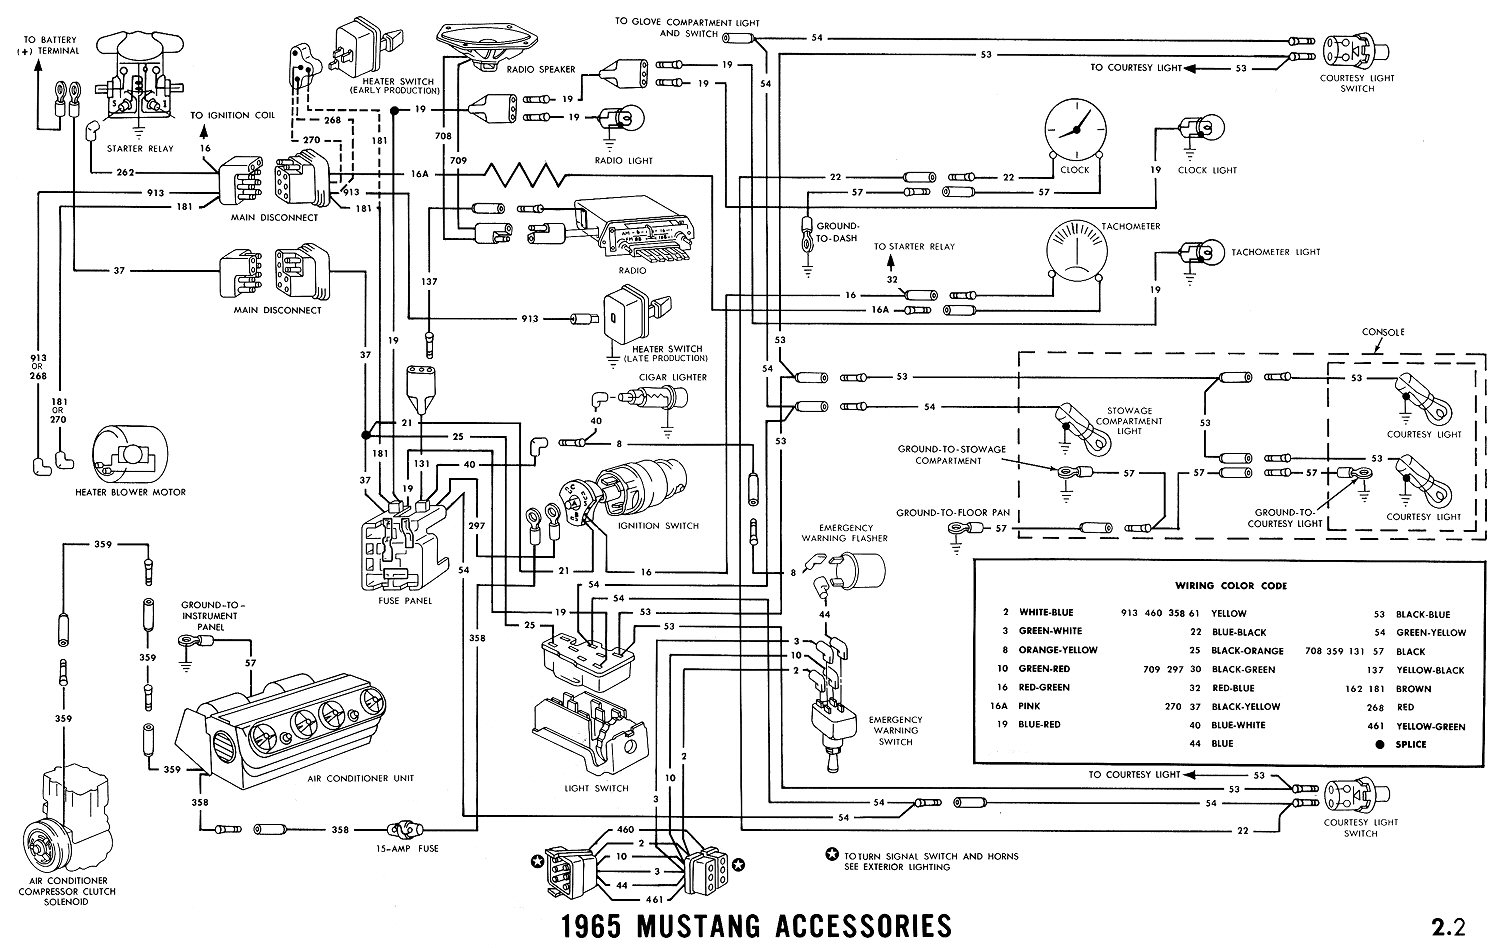 1966 Mustang Wiring Diagrams - All Wiring Diagram Data - 1966 Mustang Wiring Diagram